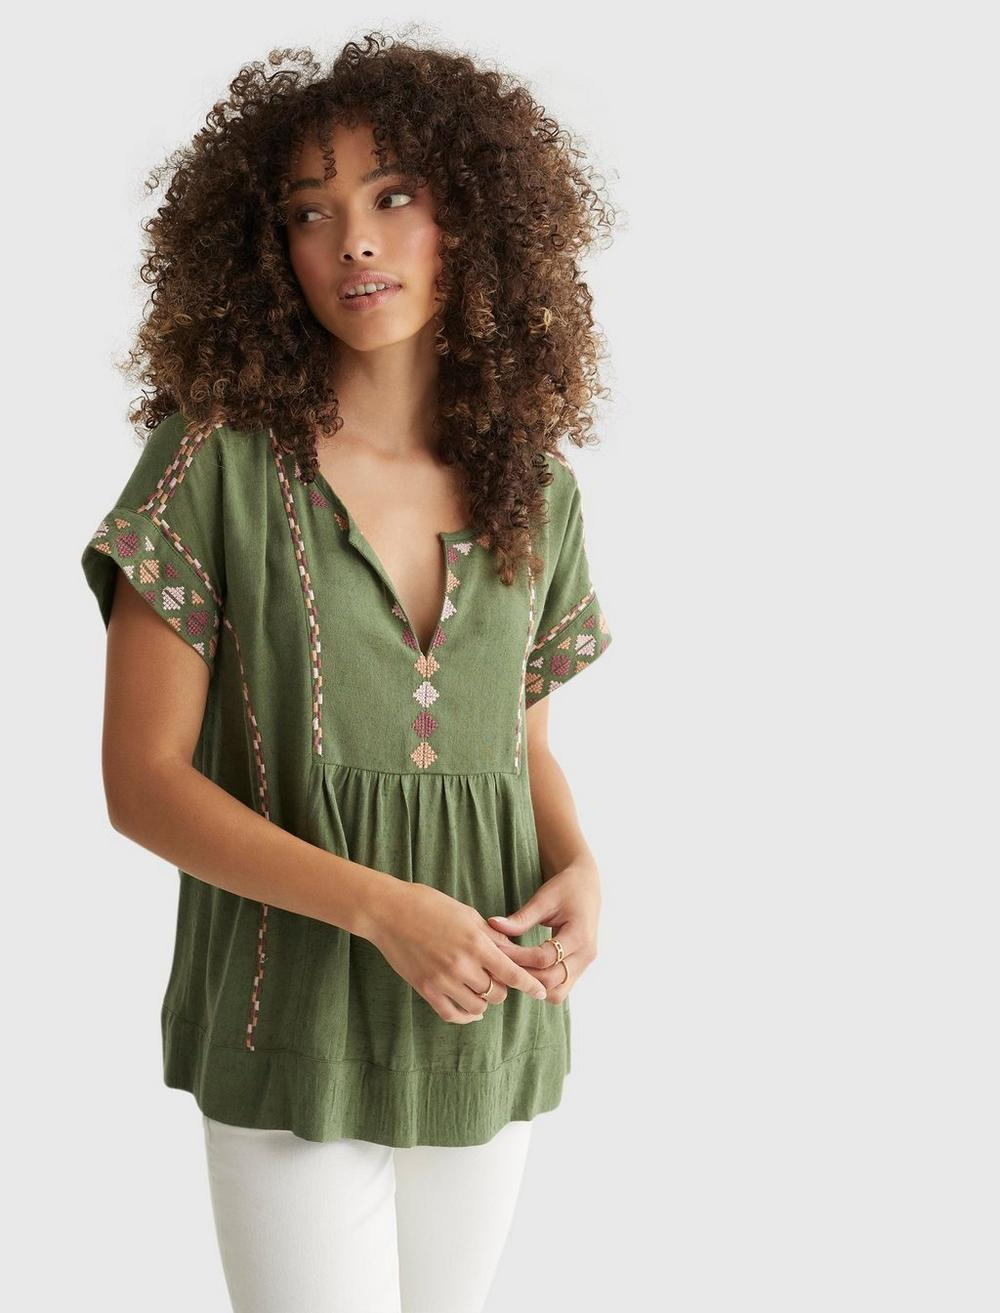 SHORT SLEEVE EMBROIDERED PEASANT TOP, image 1